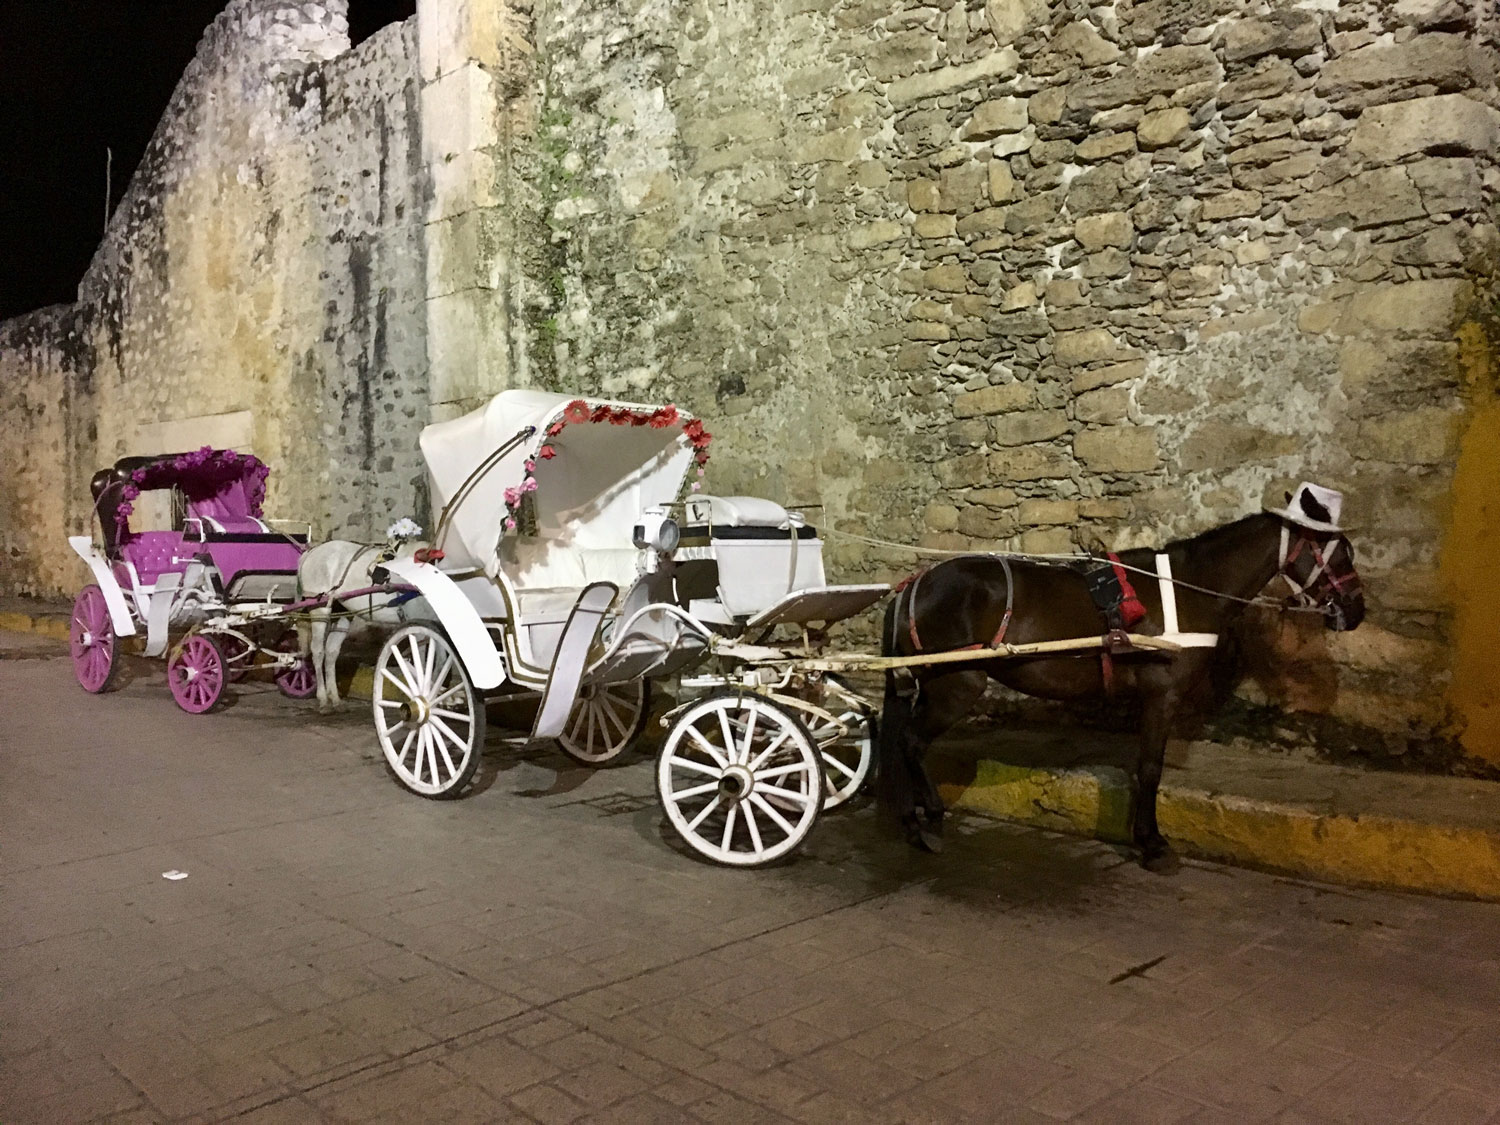 You can rent the horse carriage by the convent.